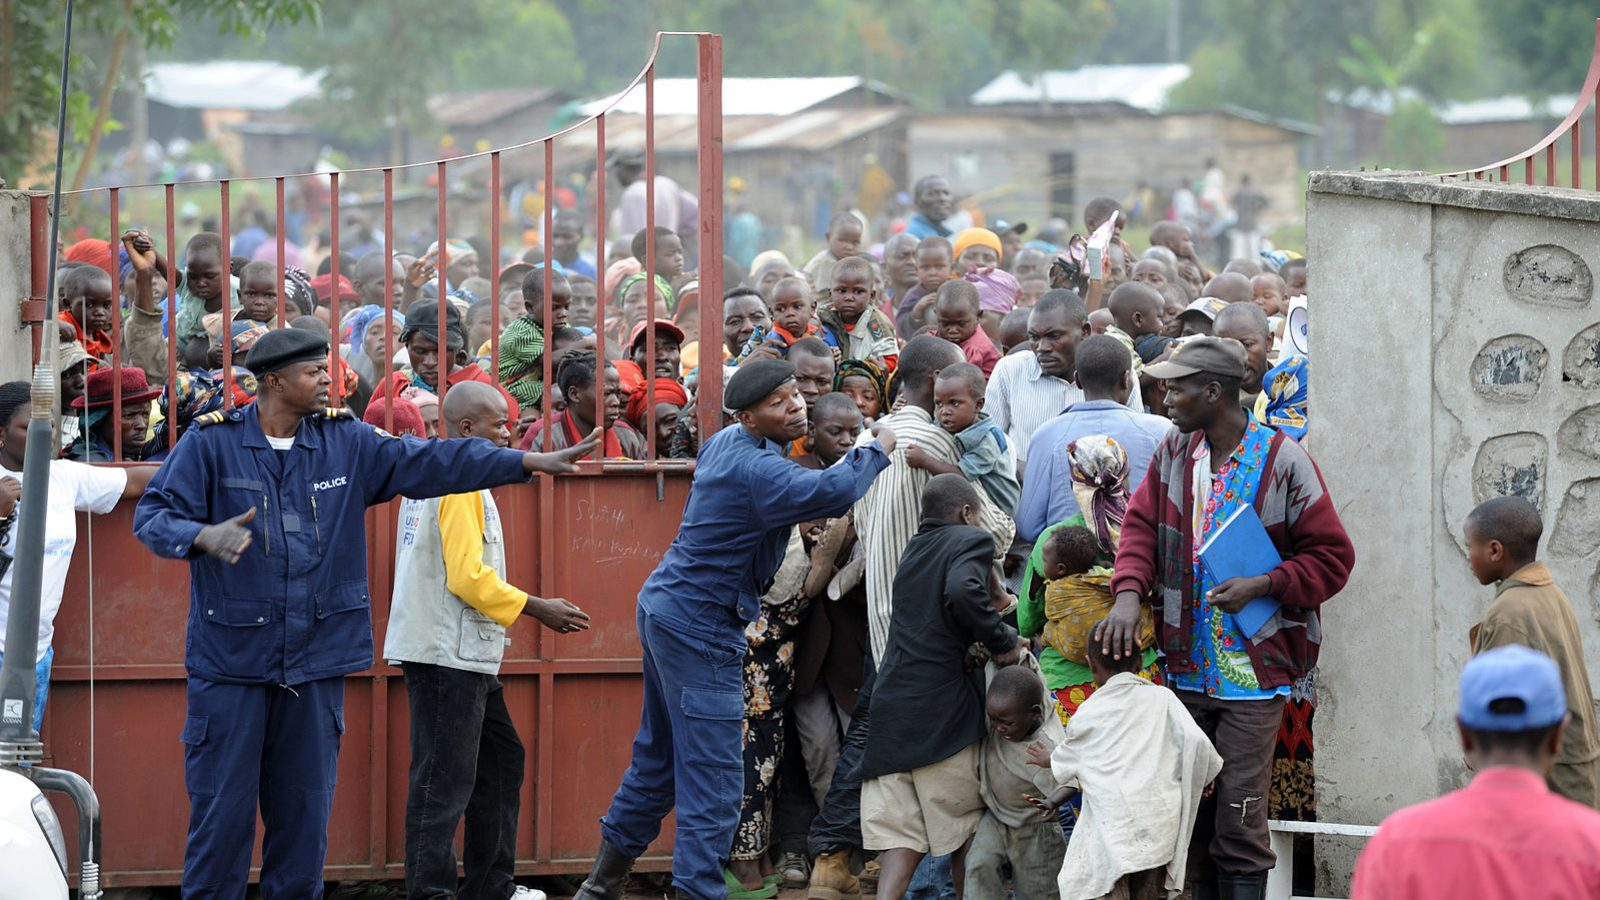 Humanitarian aid delivery in DRC